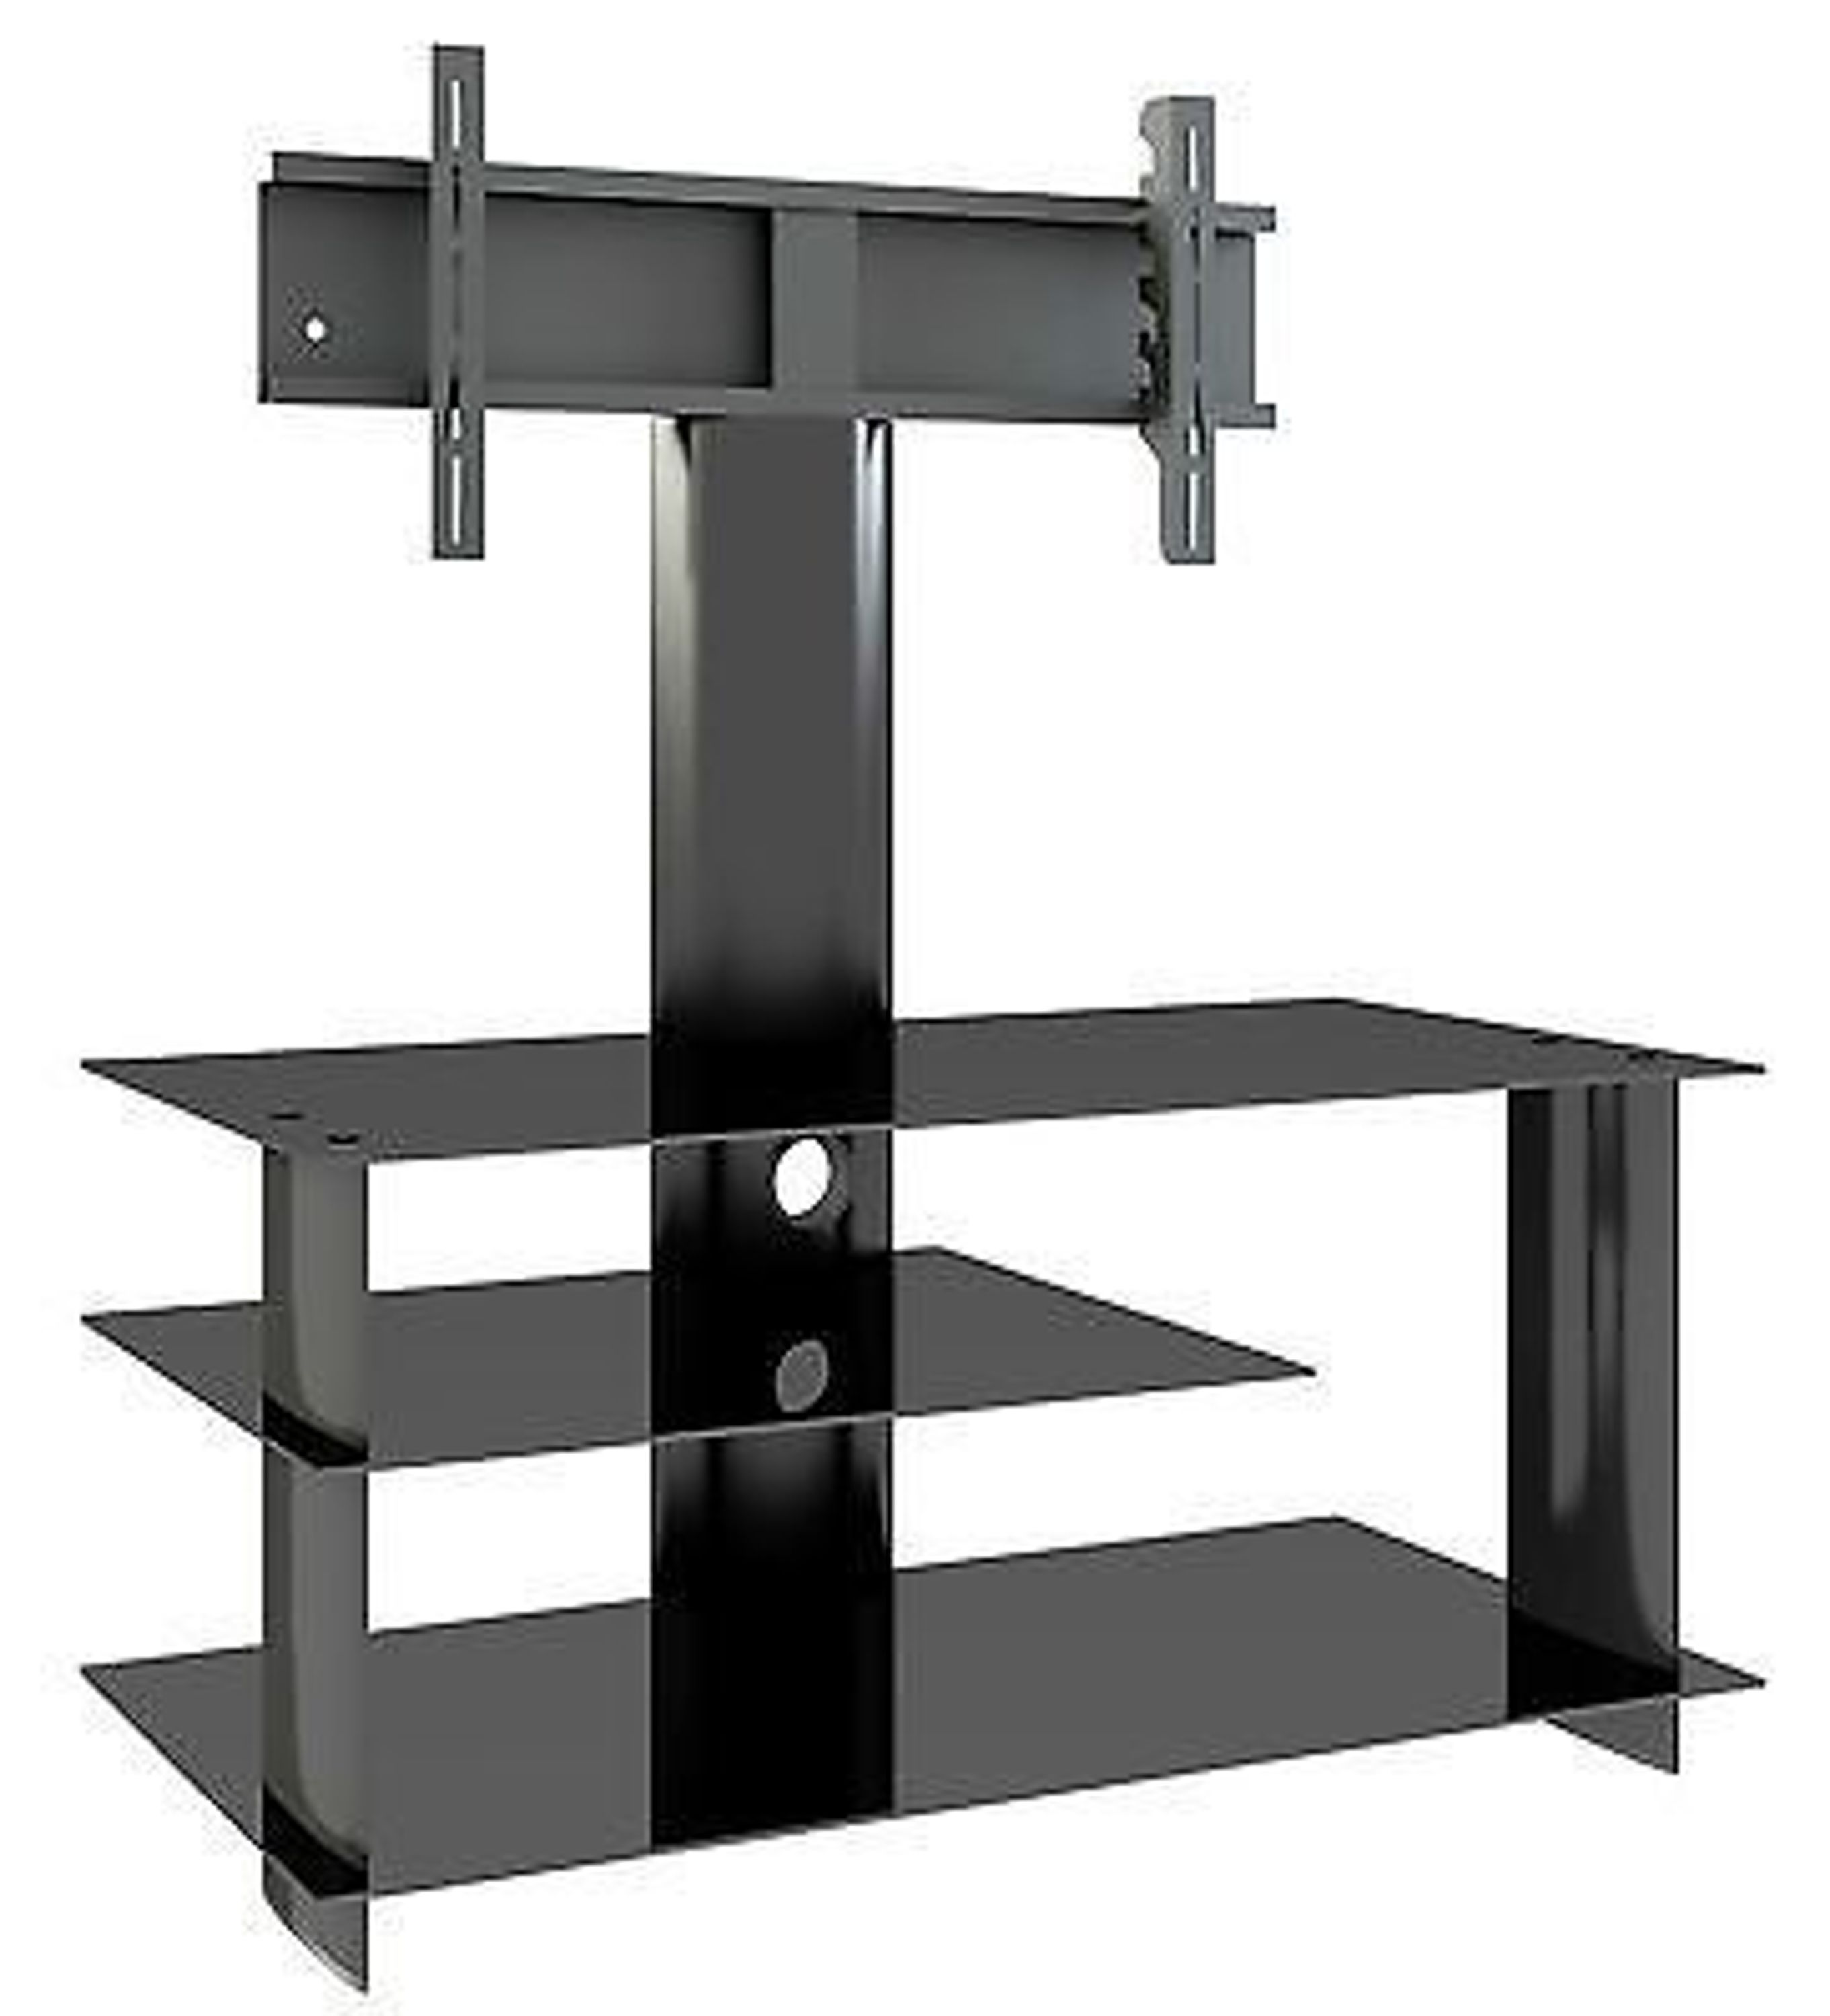 tv rack mit halterung tv m bel m bel led hifi standkonsole rack tisch glas kaufen bei. Black Bedroom Furniture Sets. Home Design Ideas